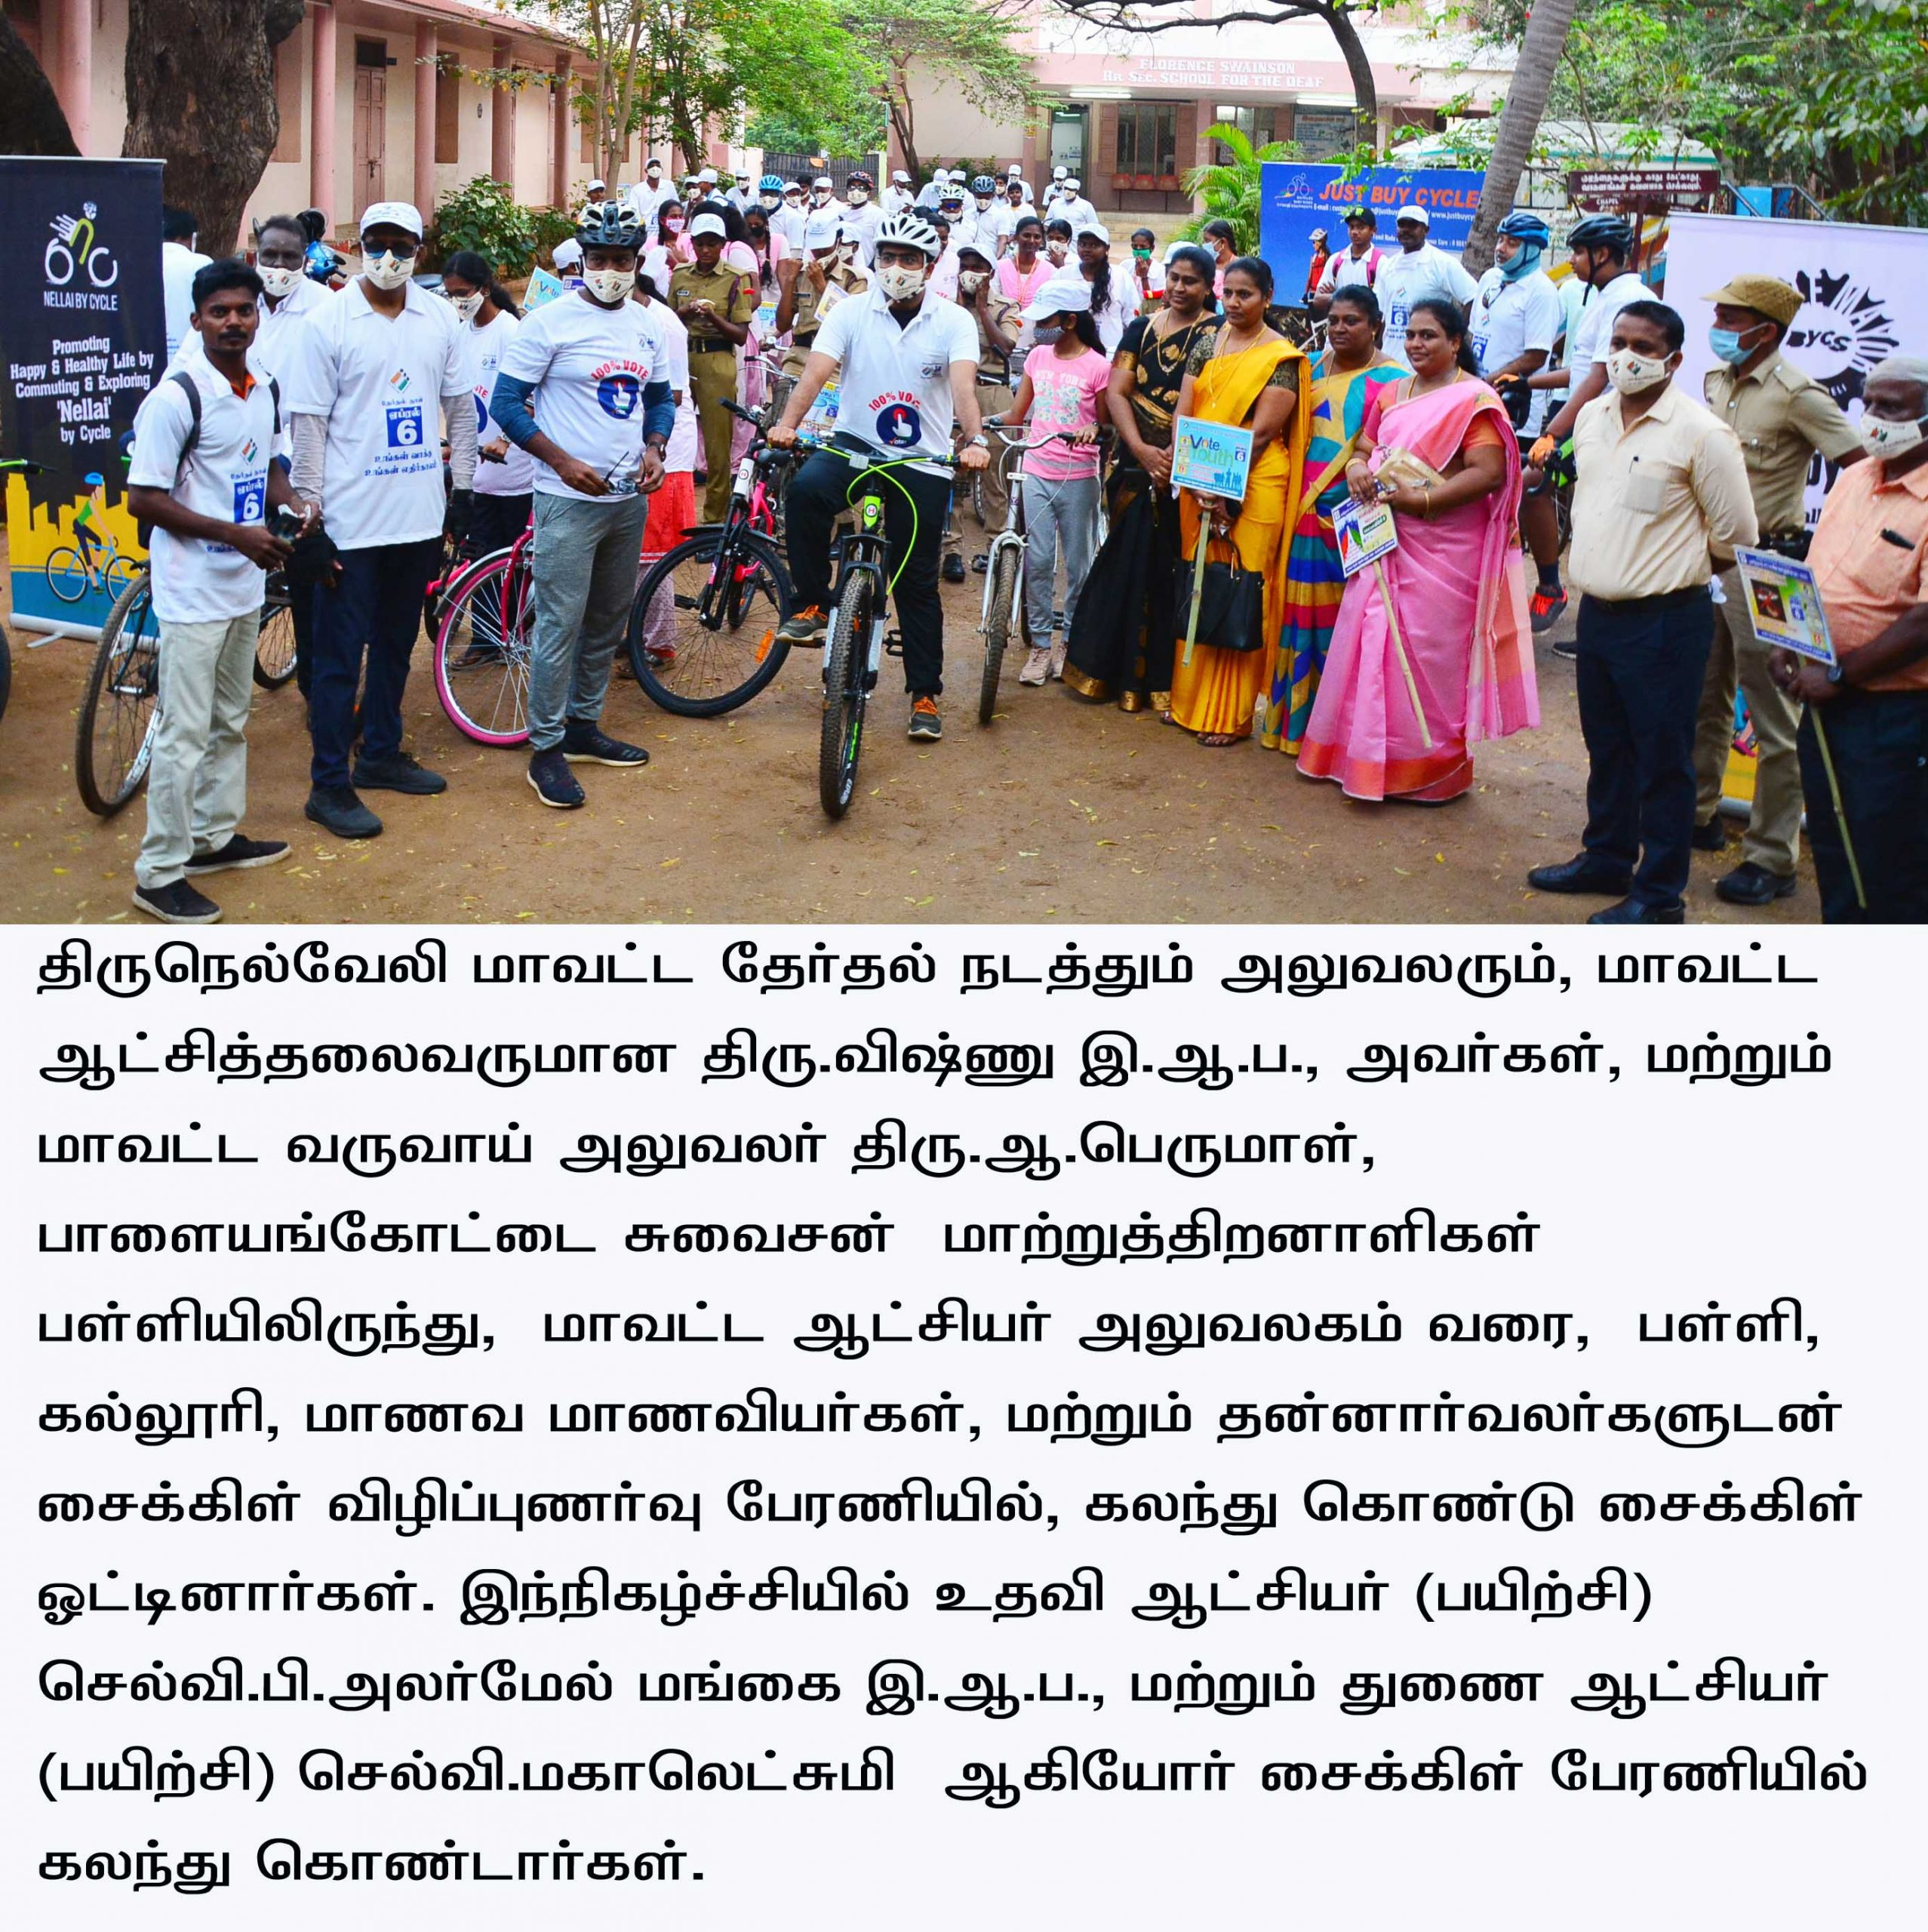 District Collector initiated the awareness programs on 100 percent voting img 4